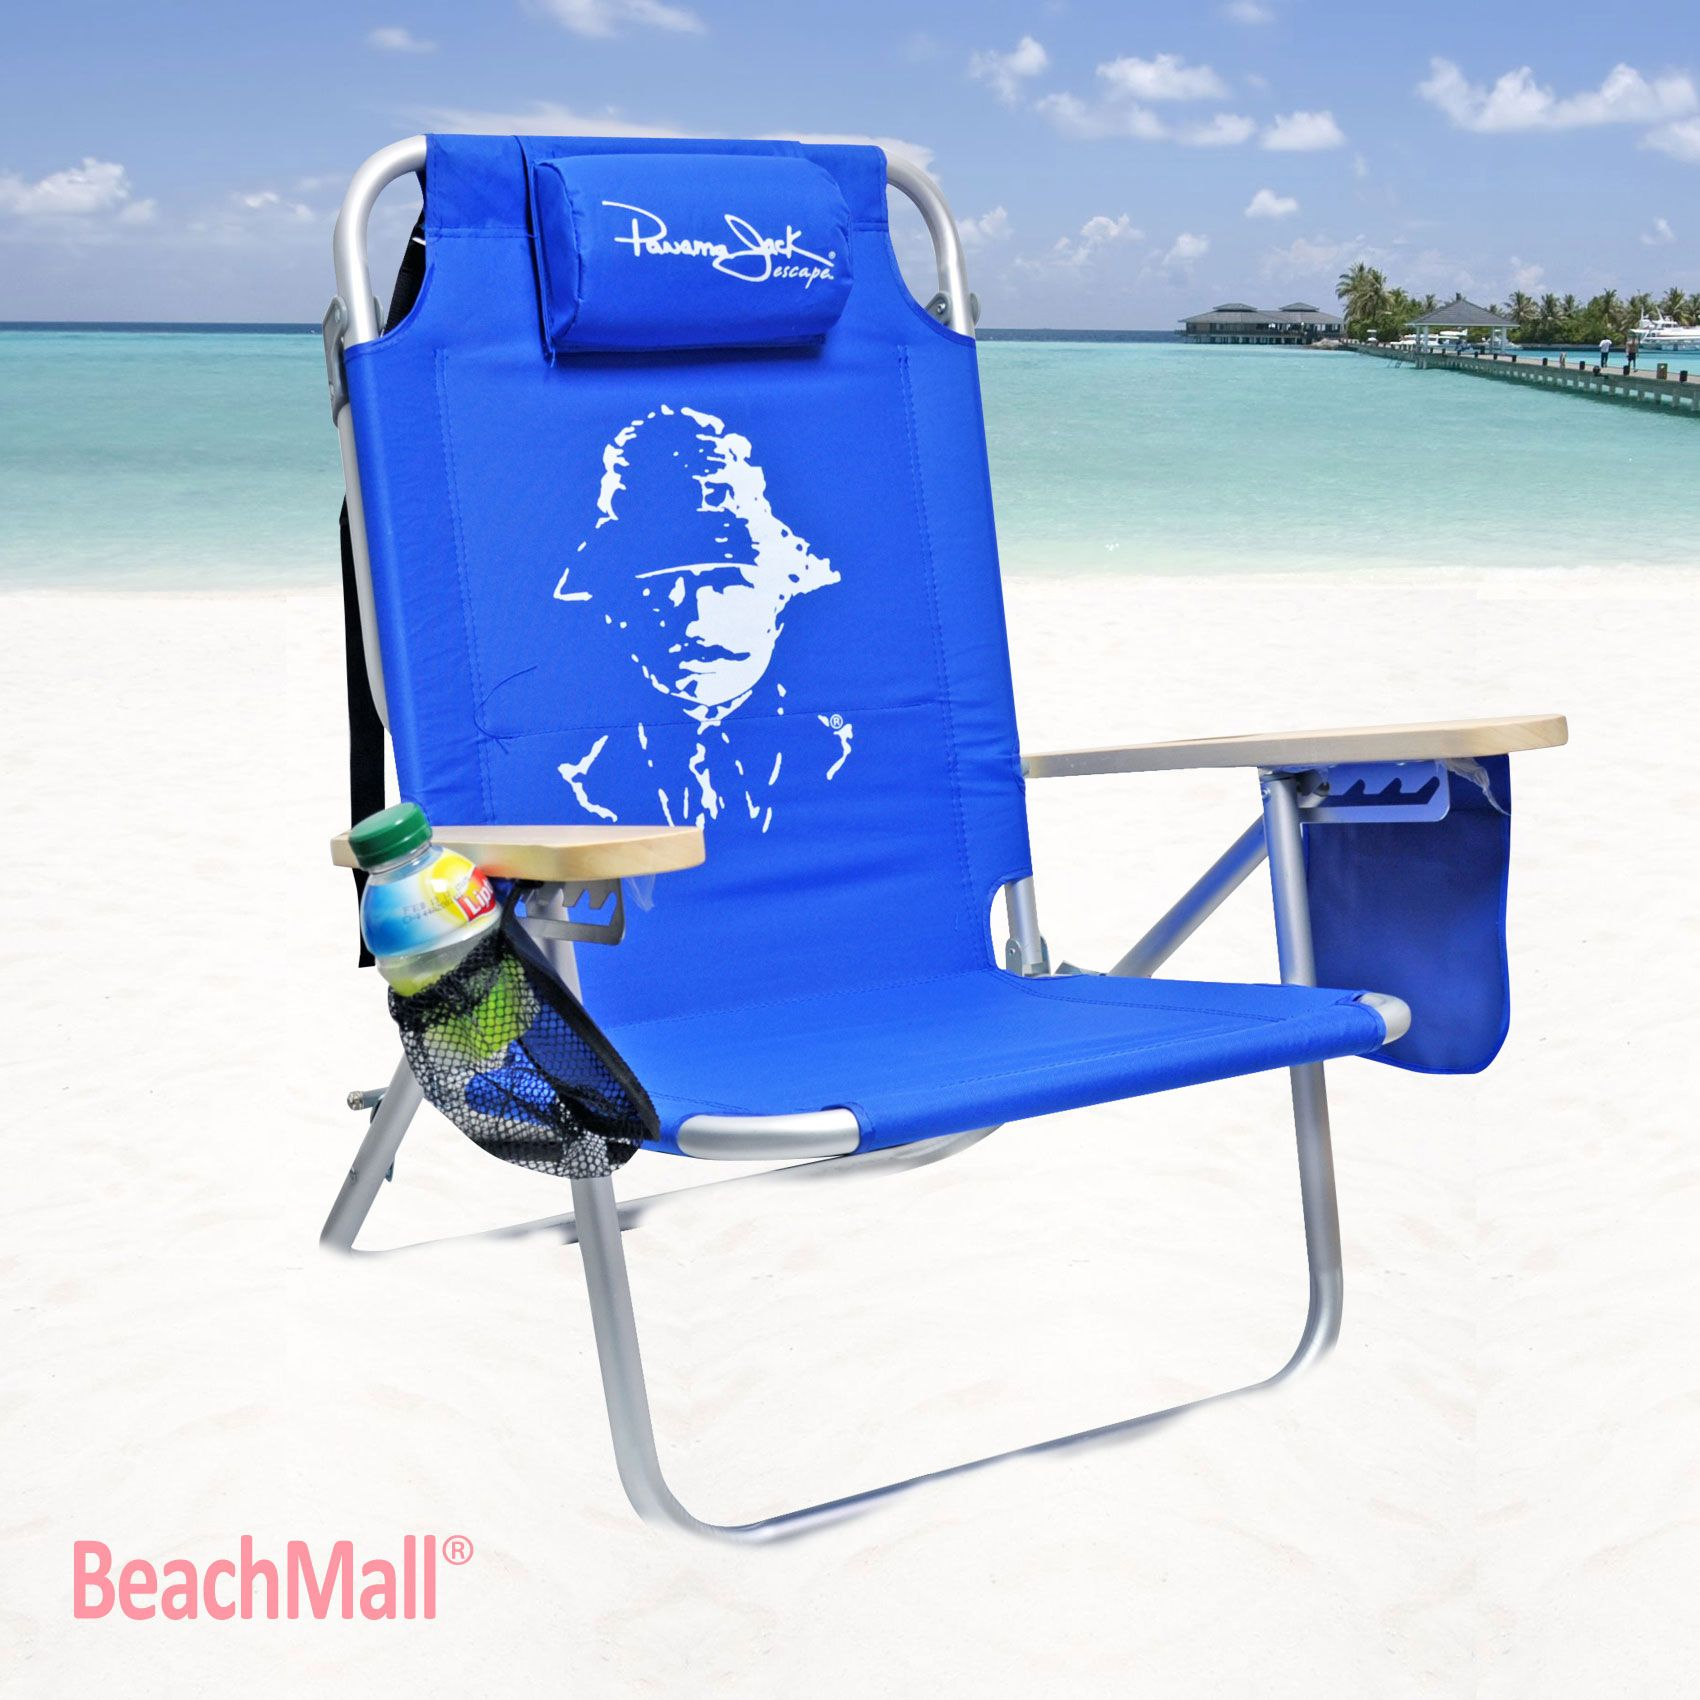 2 beach chairs on the beach - Beach Chair By Panama Jack